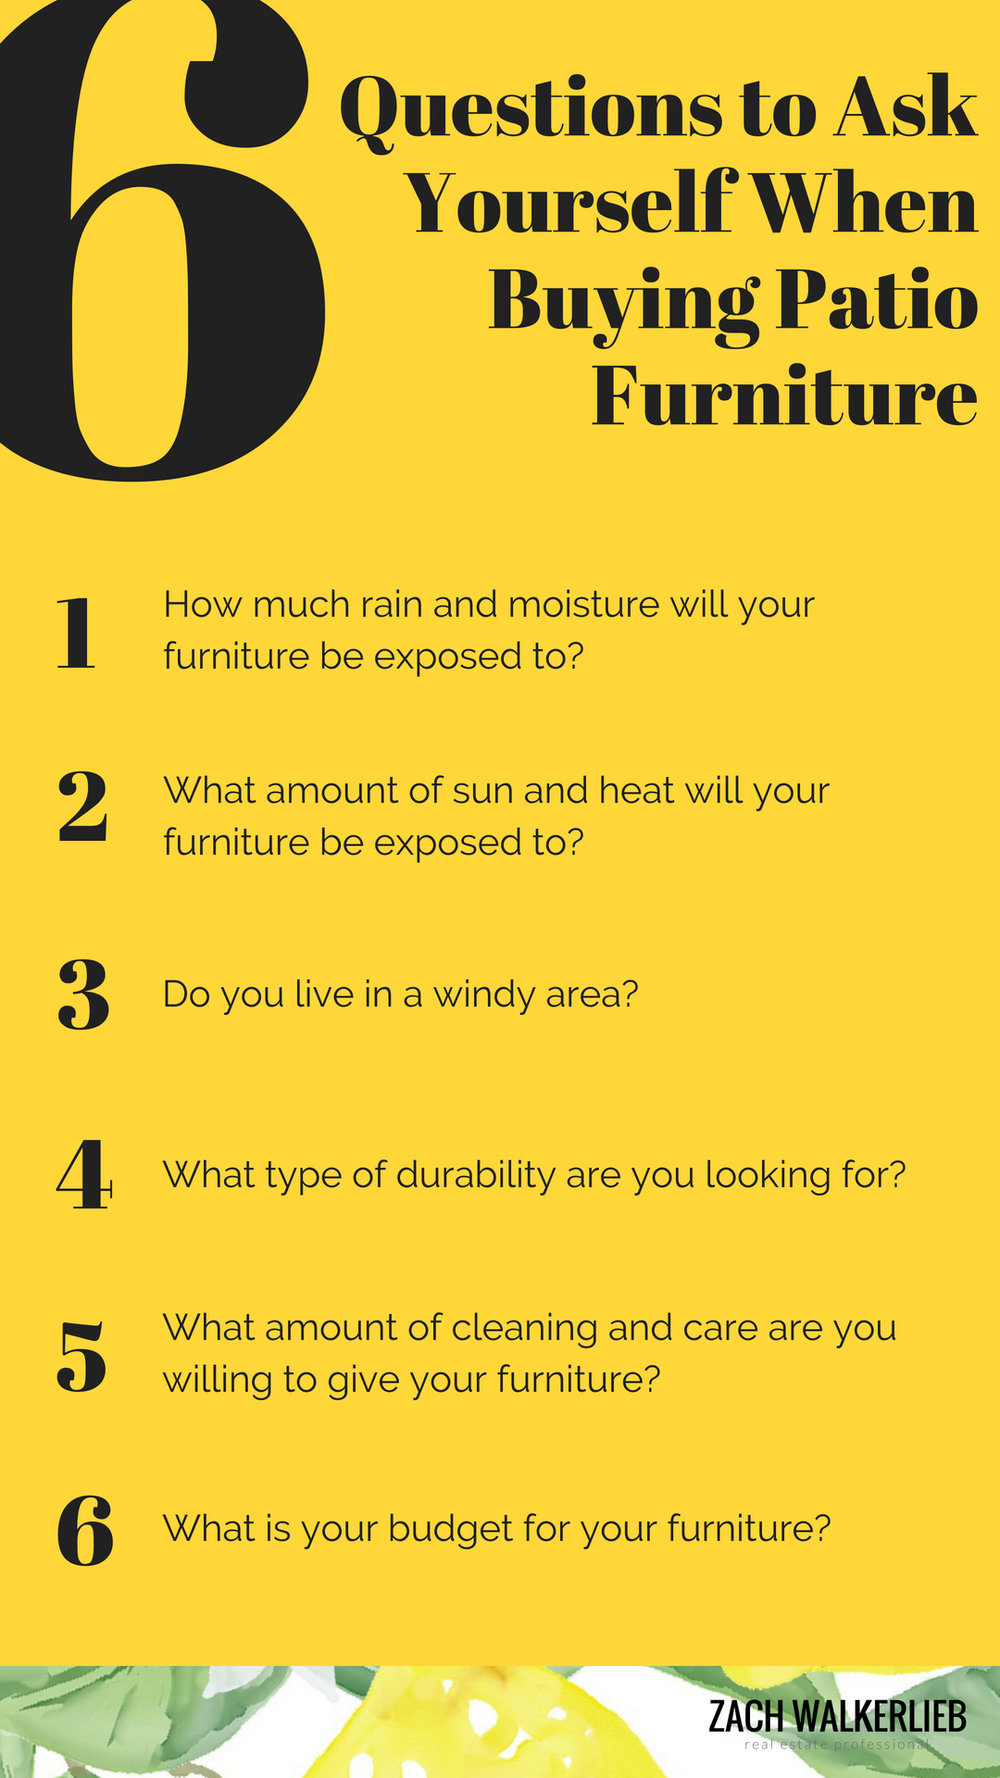 6 Questions to Ask Yourself When Buying Patio Furniture.jpg